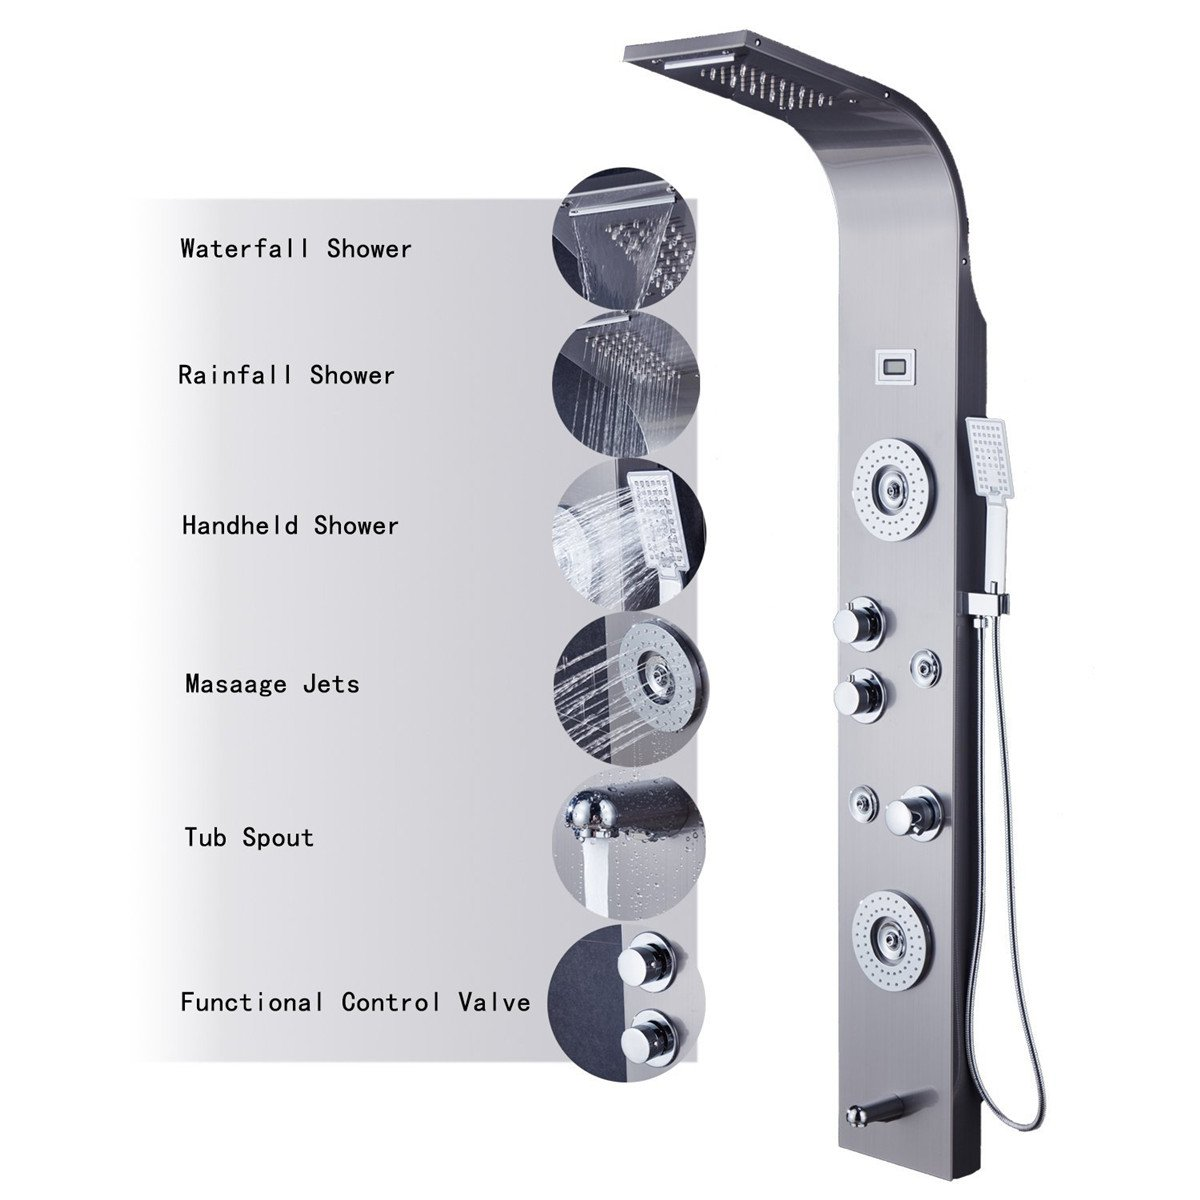 ELLO&ALLO Stainless Steel Shower Panel Tower System,LED Rainfall Waterfall Shower Head 5-Function Faucet Rain Massage System with Body Jets Fingerprint-free, Brushed Nickel